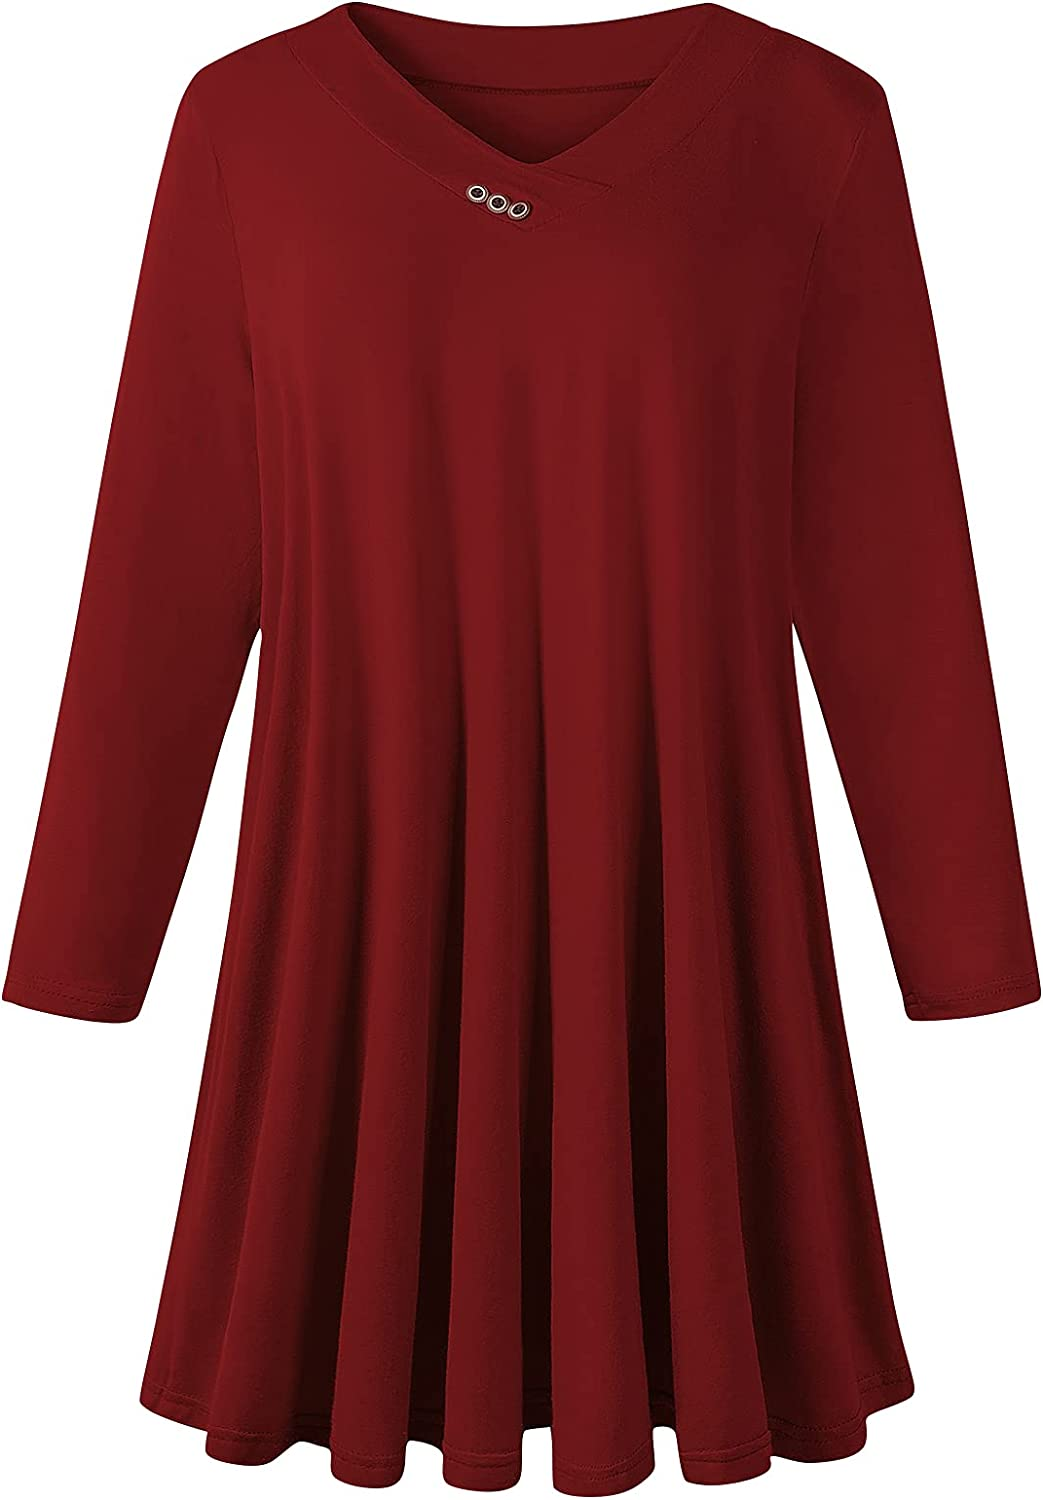 LLMISI Womens Plus Size Long Sleeve Shirts V Neck Swing Tunic Tops Casual Loose Tee To Wear With Leggings